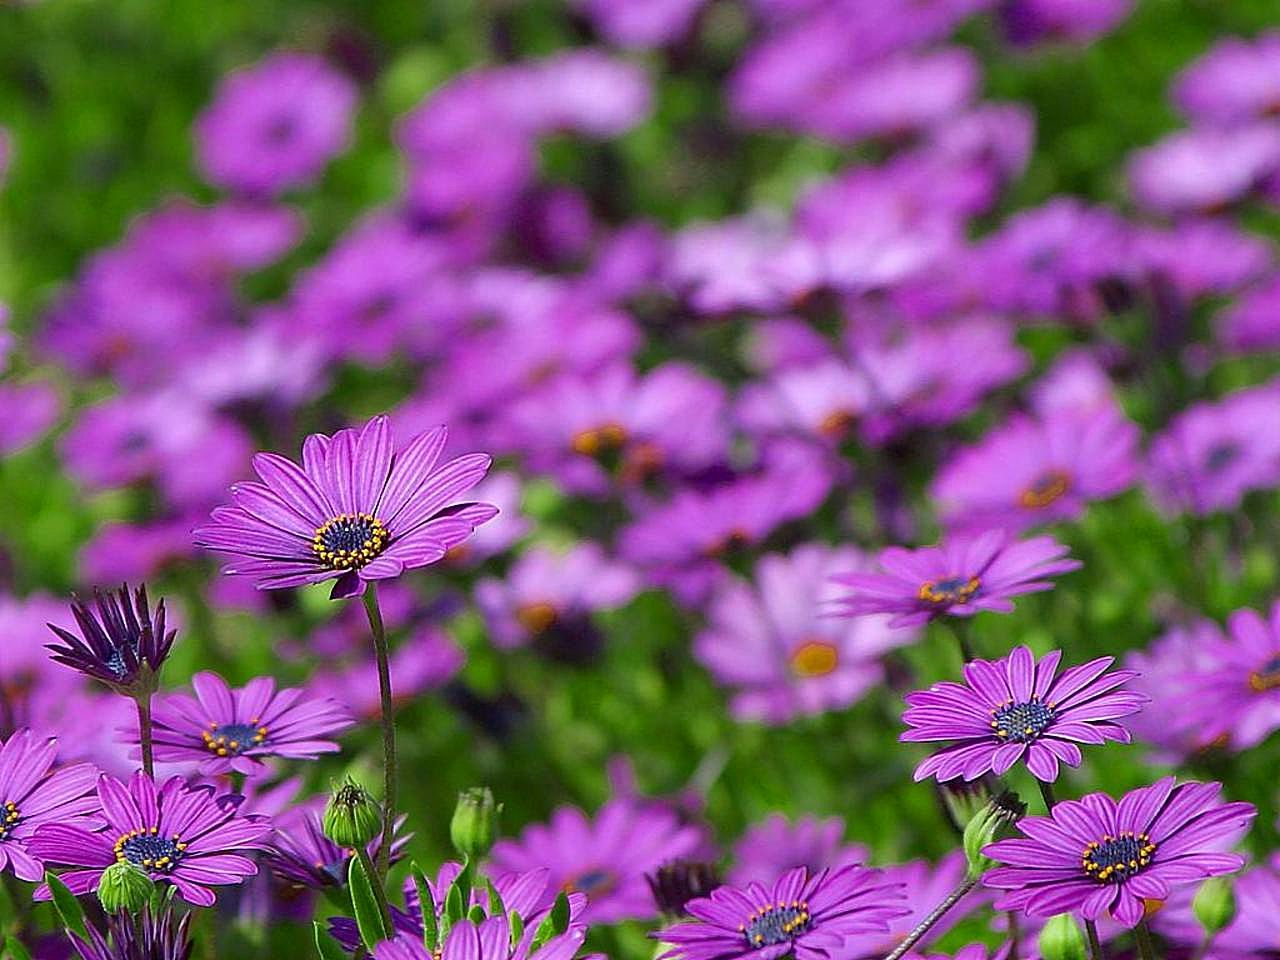 Free picture daisy daisies flowers purple daisy daisies flowers purple izmirmasajfo Gallery